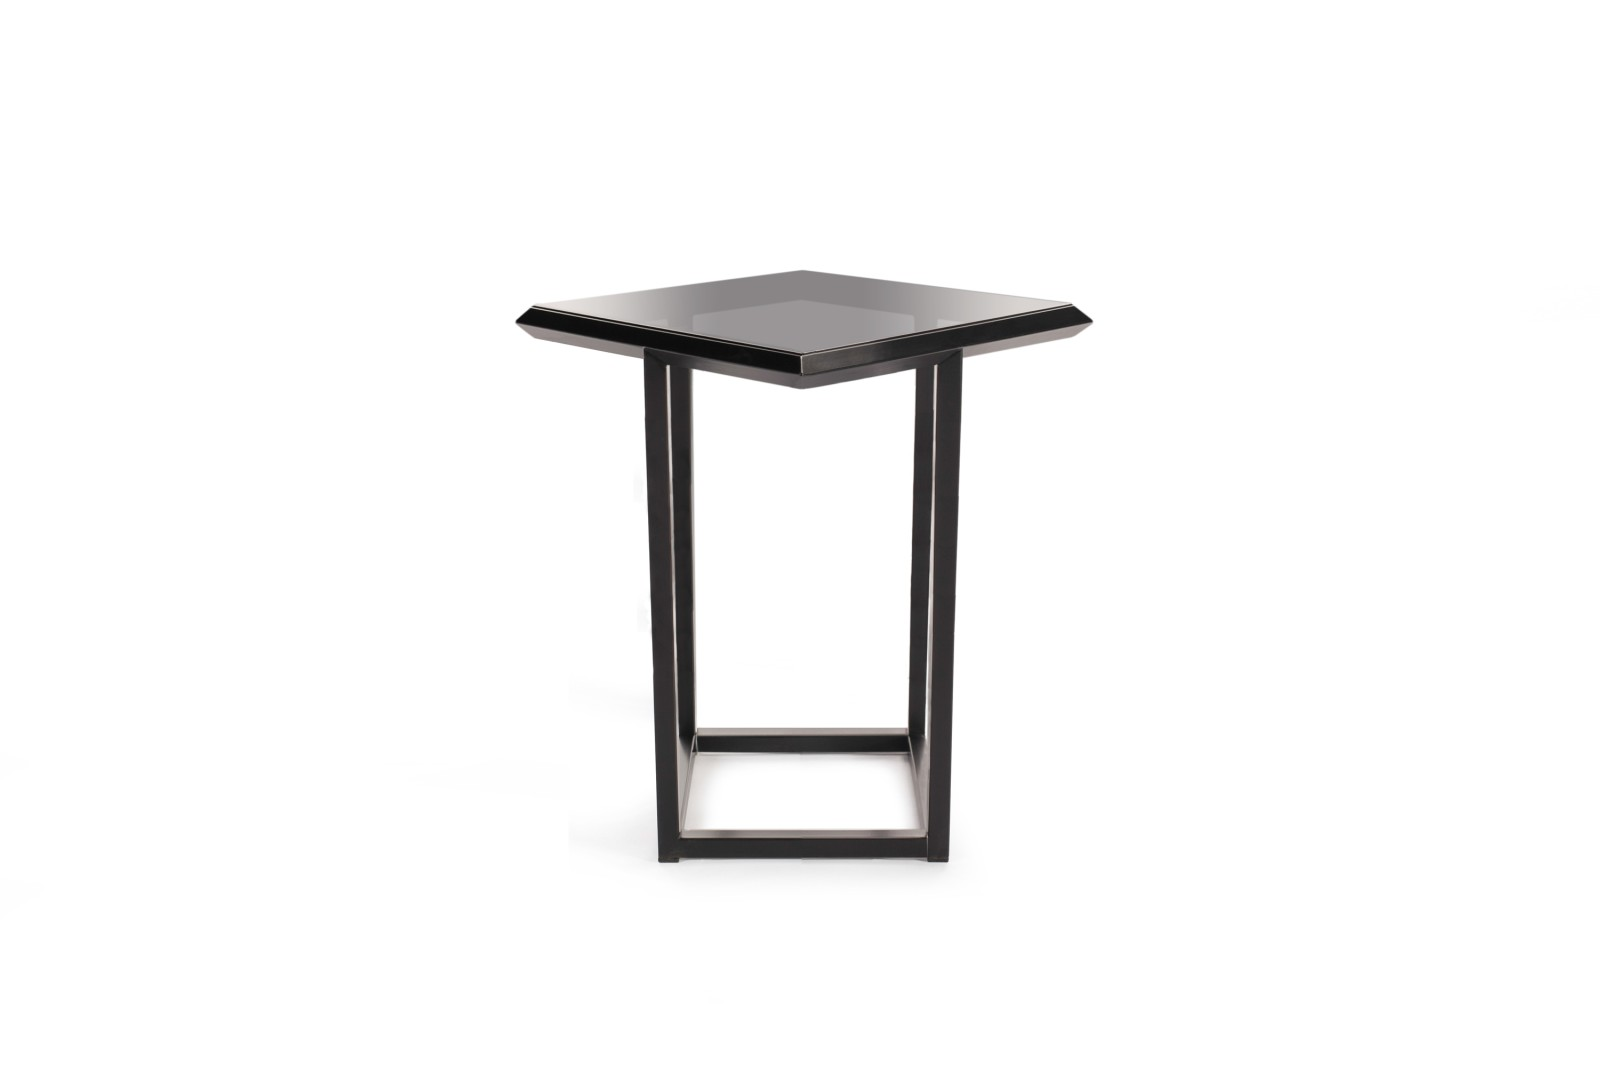 Turn Side Table Jet Black - RAL 9005, Smoked Glass